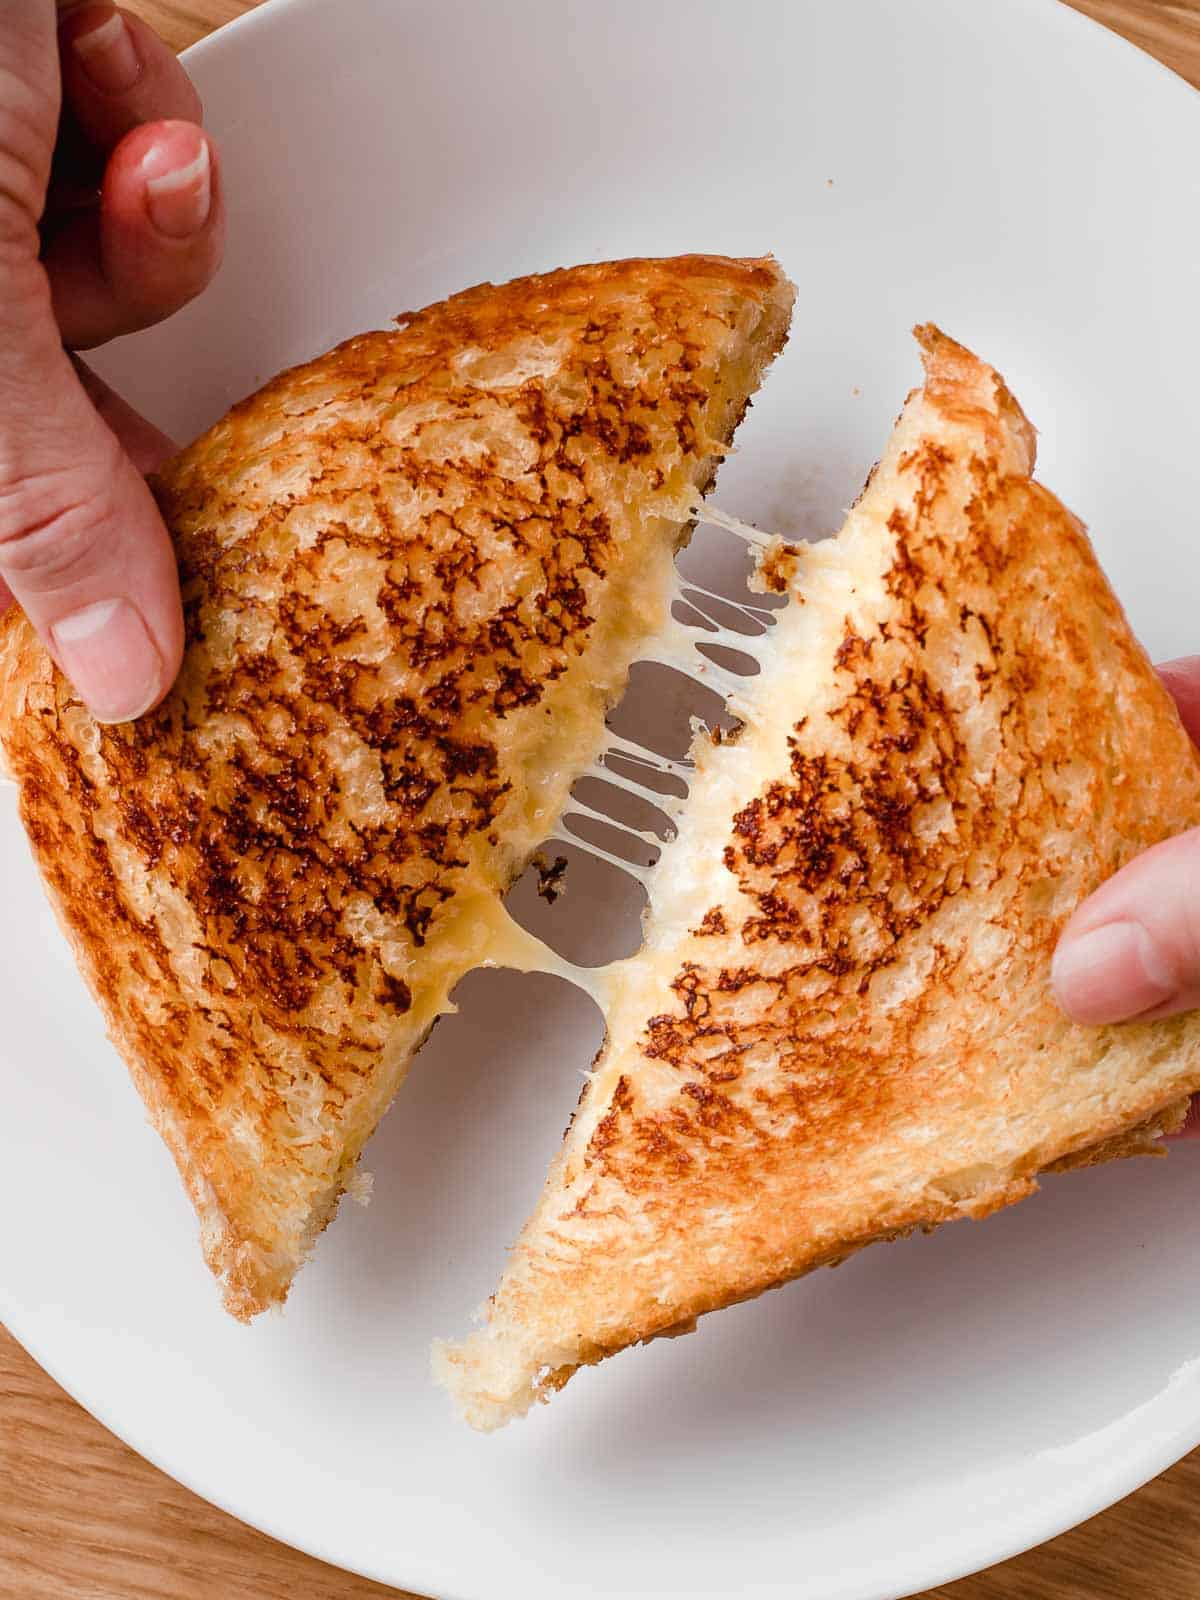 A grilled cheese sandwich cut in half being pulled apart with melted cheese.